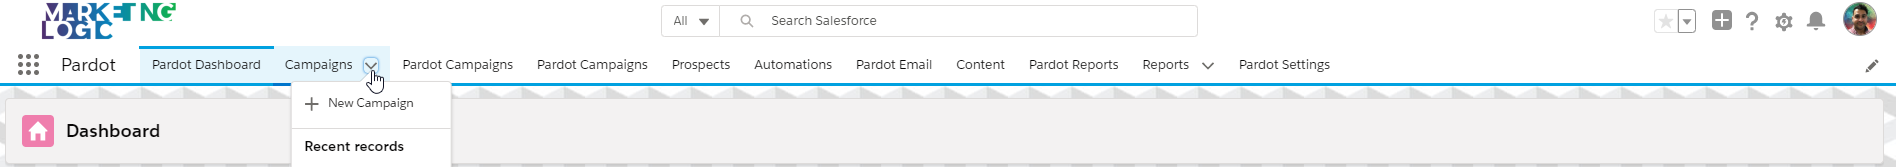 Send a List Email in Pardot